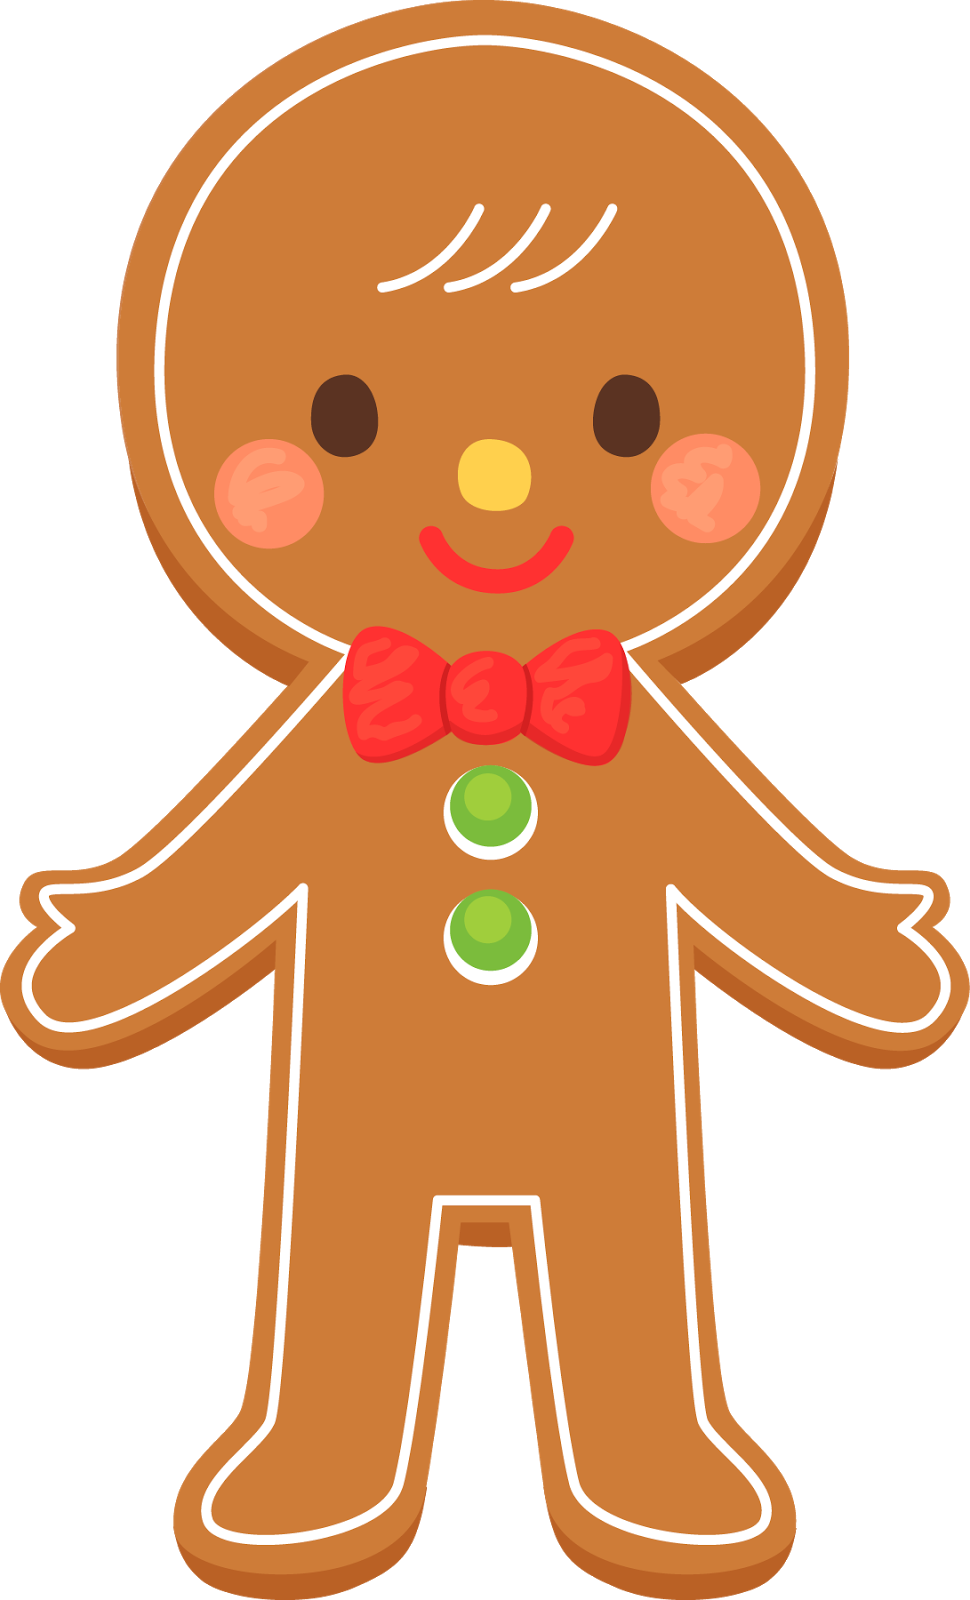 Gingerbread Man Clipart Free Clip Art Images